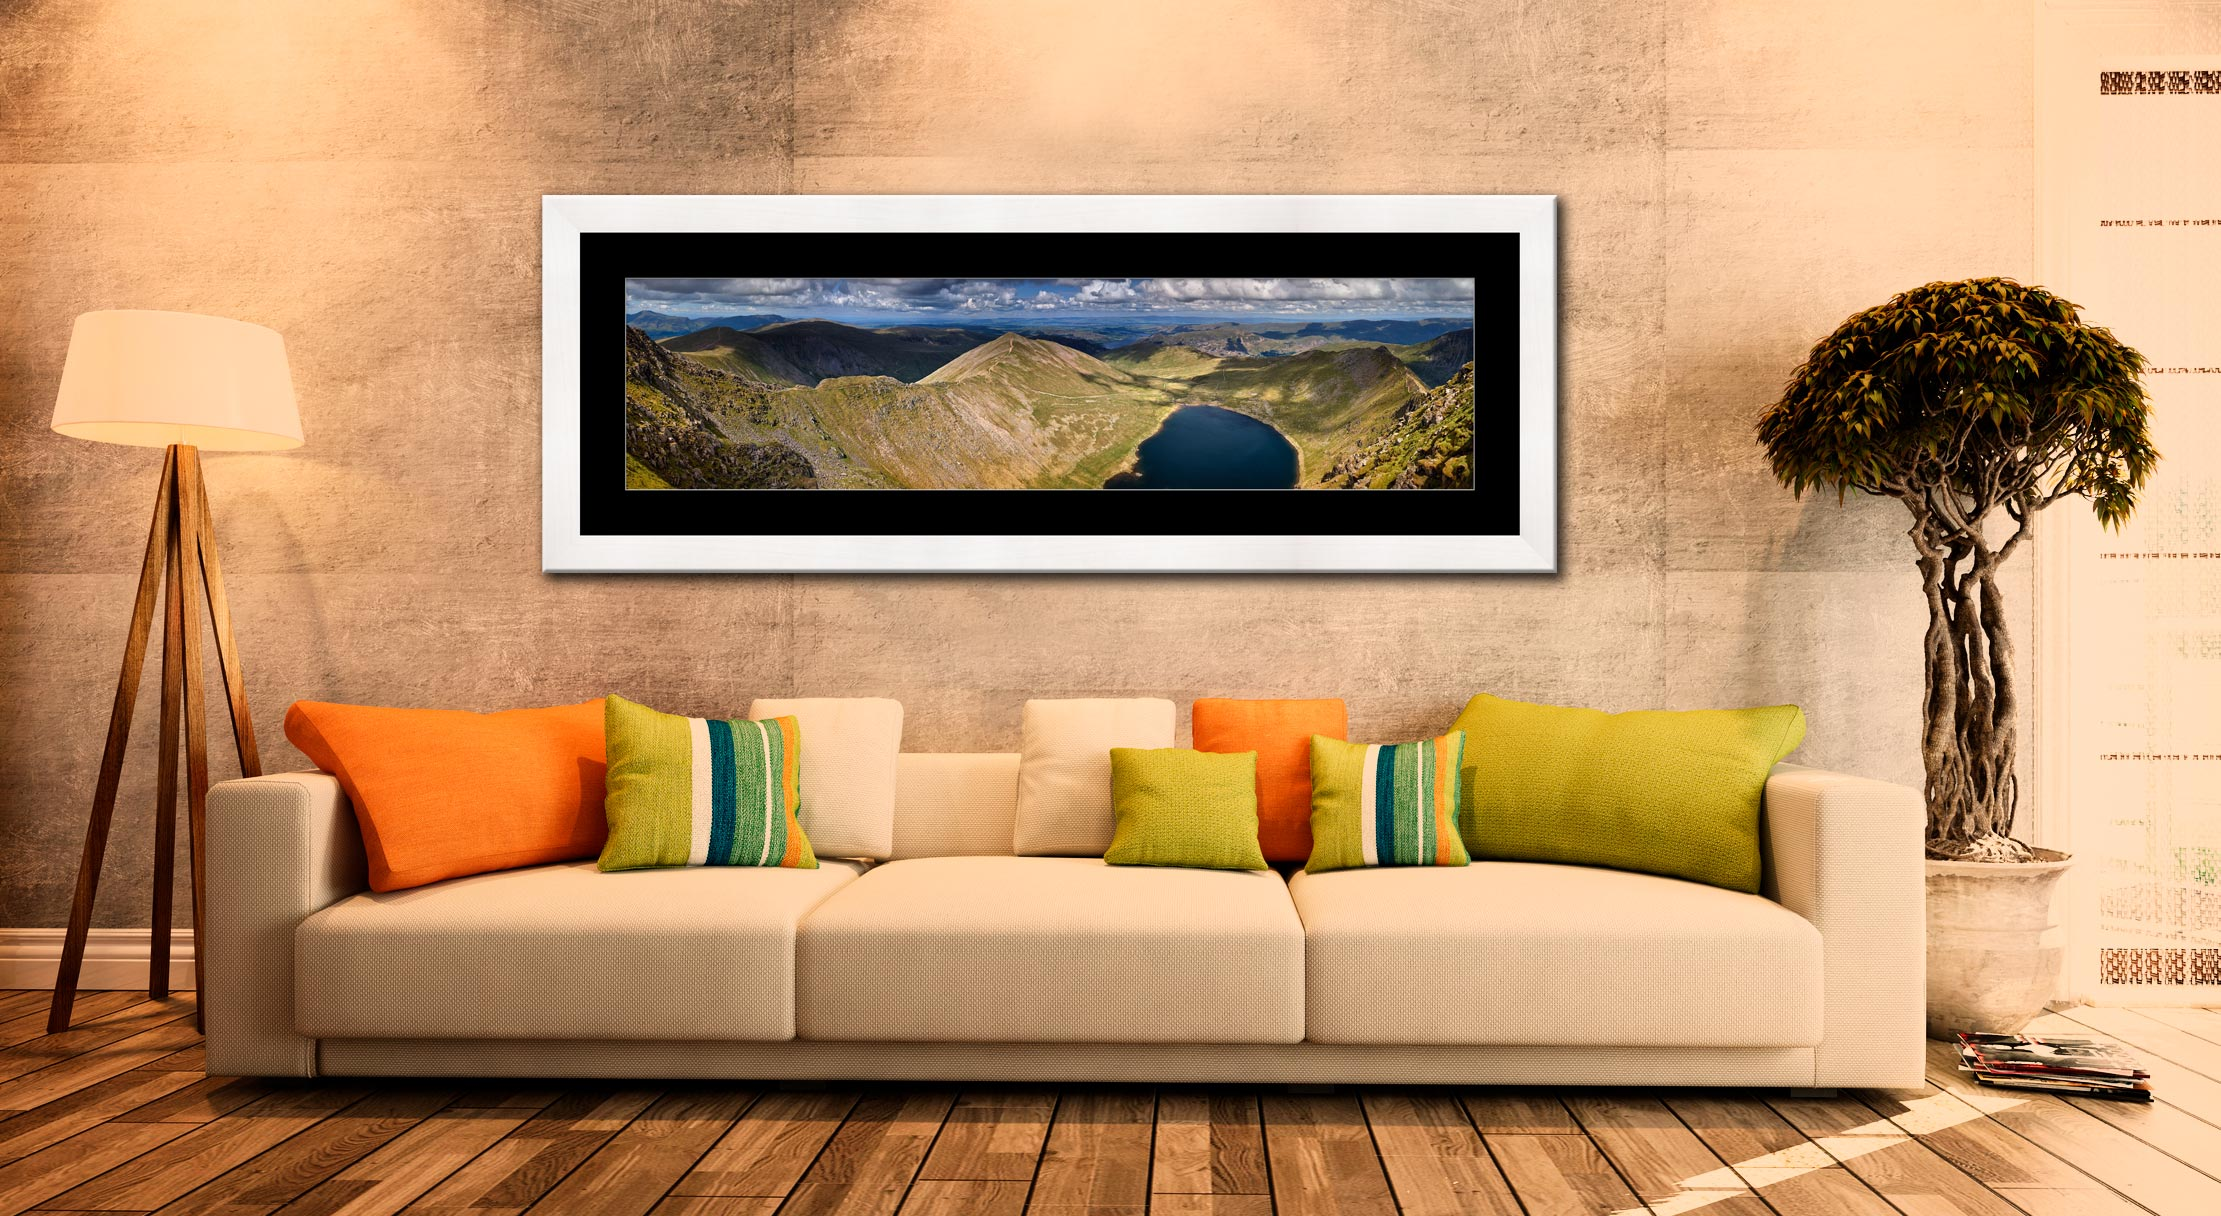 Swirral Edge to Striding Edge - Framed Print with Mount on Wall